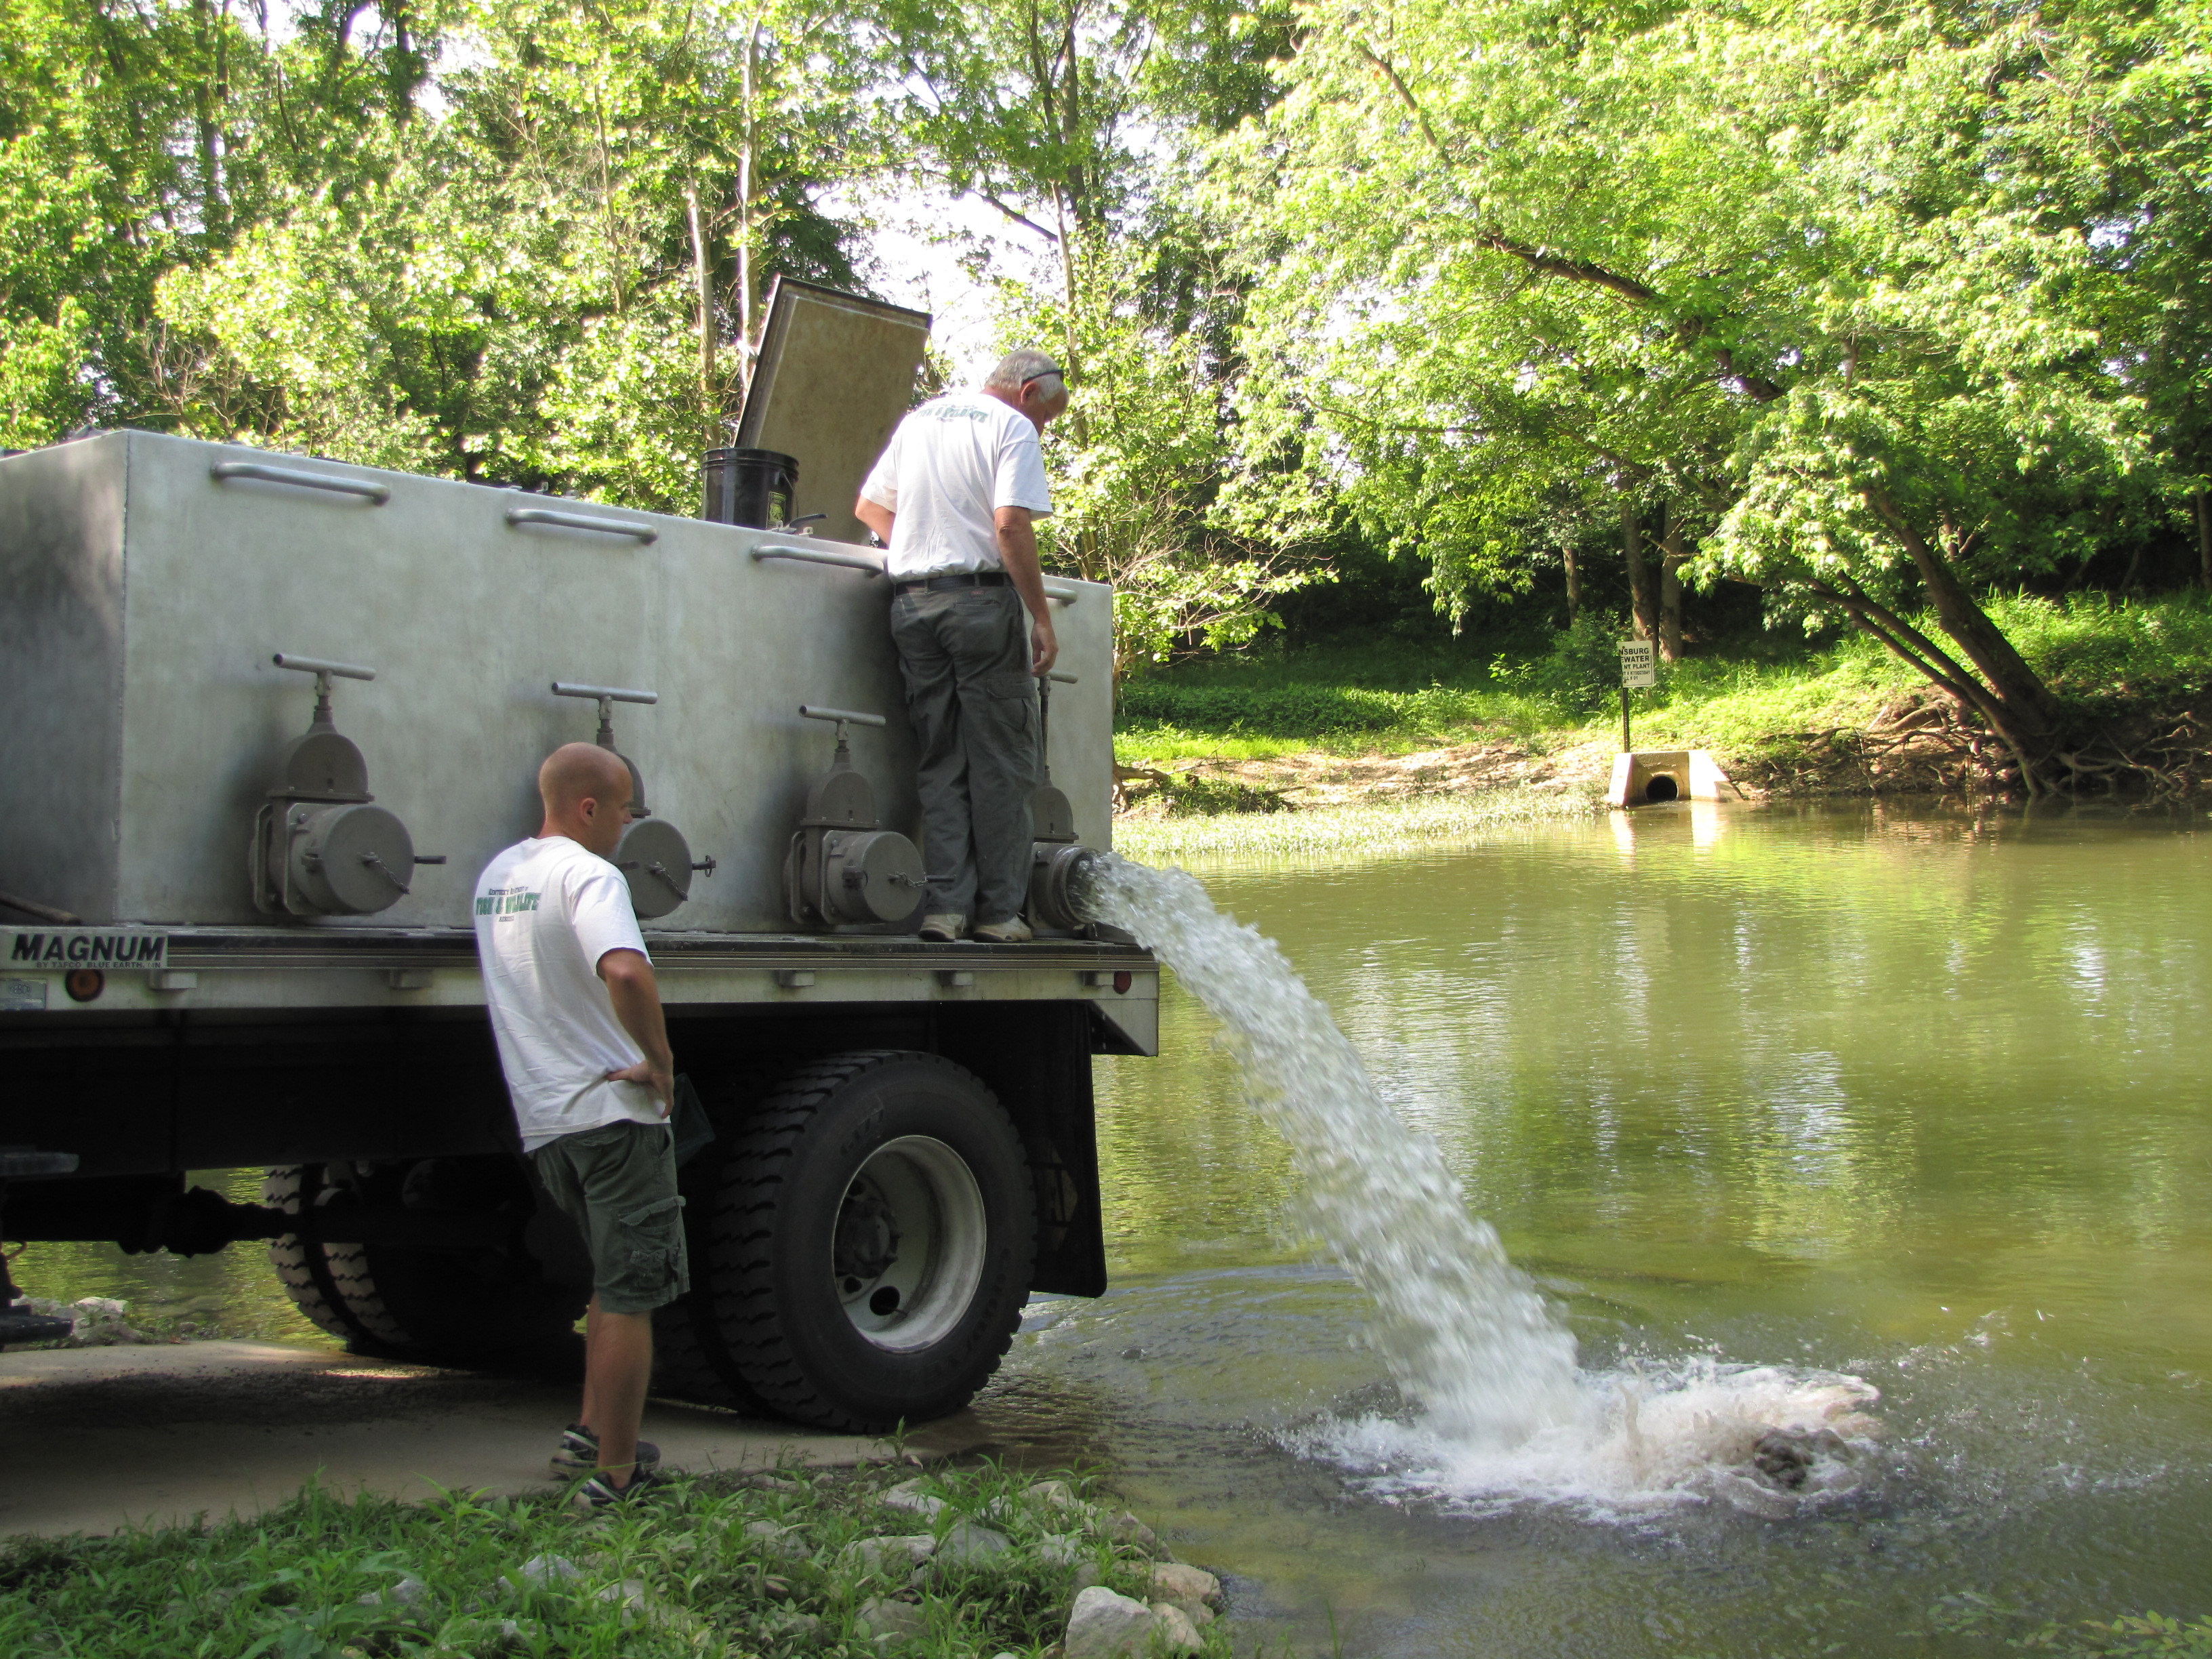 Fisheries personnel stock sauger at the Greensburg City Ramp as part of a research project to re-establish sauger into this section of the Green River.